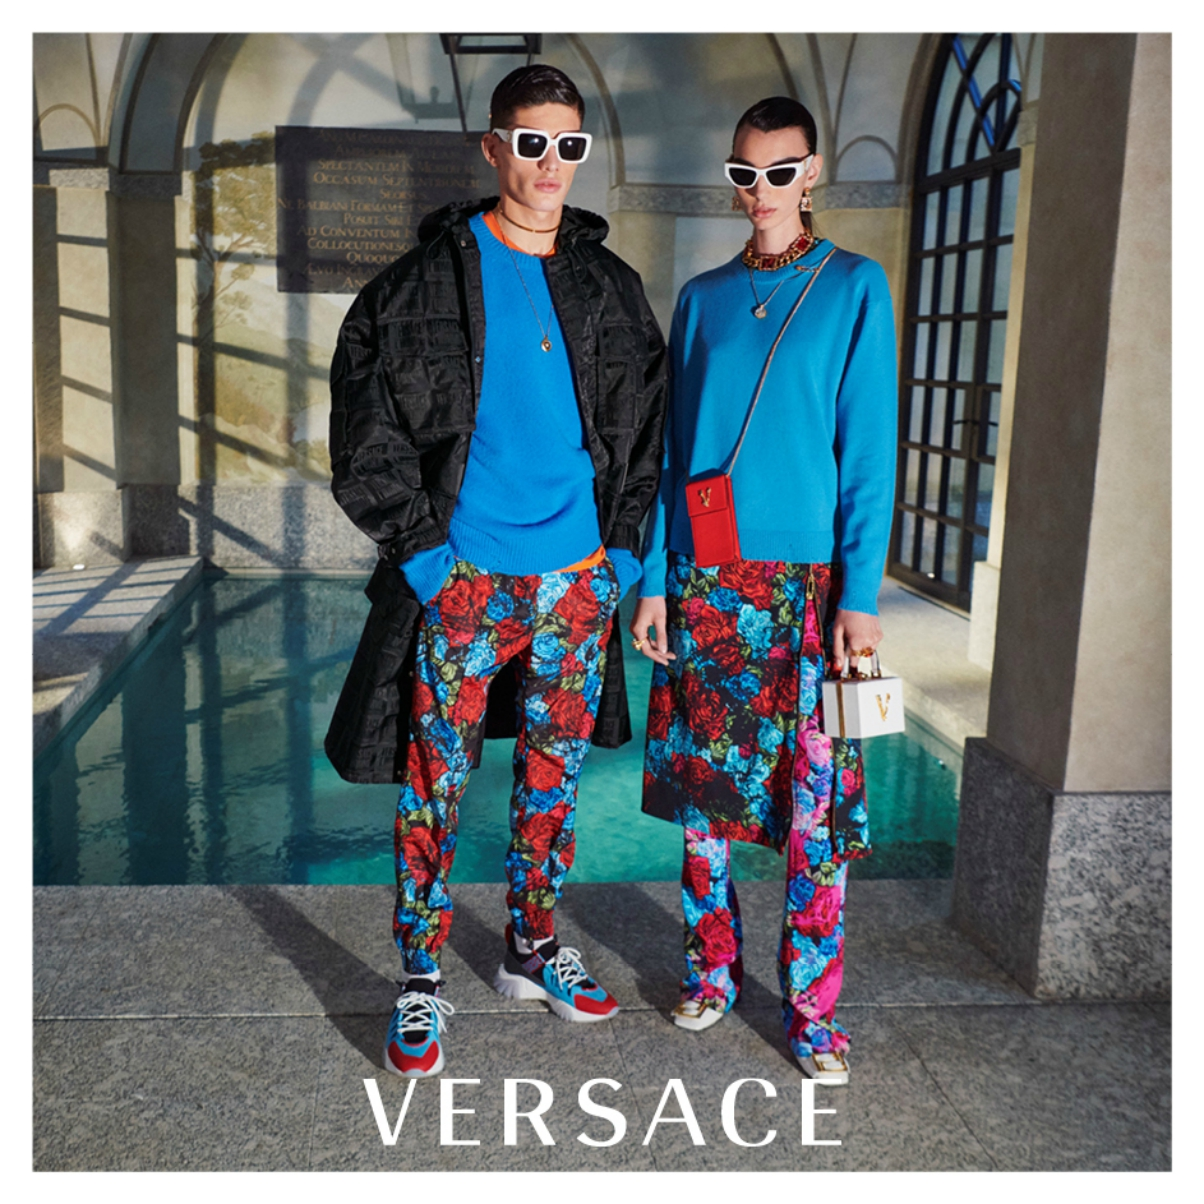 Versace parent Capri Holdings plans to selectively increase some price points for Jimmy Choo and Michael Kors product to boost margins.